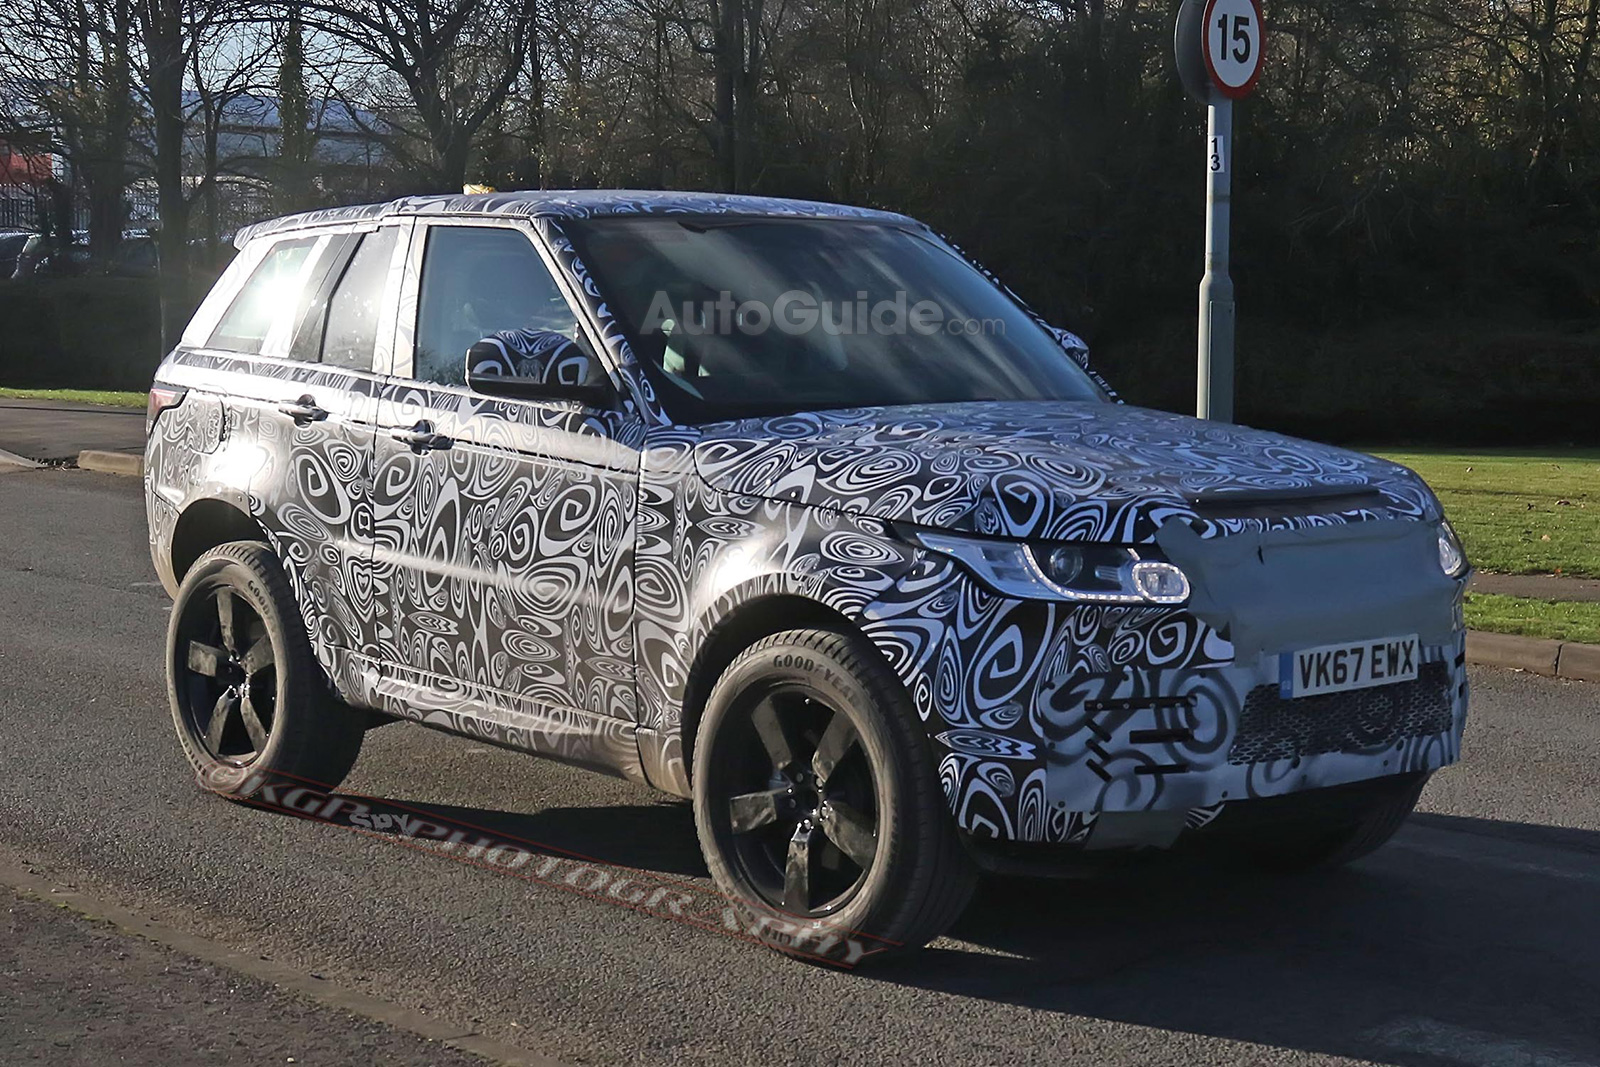 landrover cars be the land best new defender seller will digital trends rover rovers s